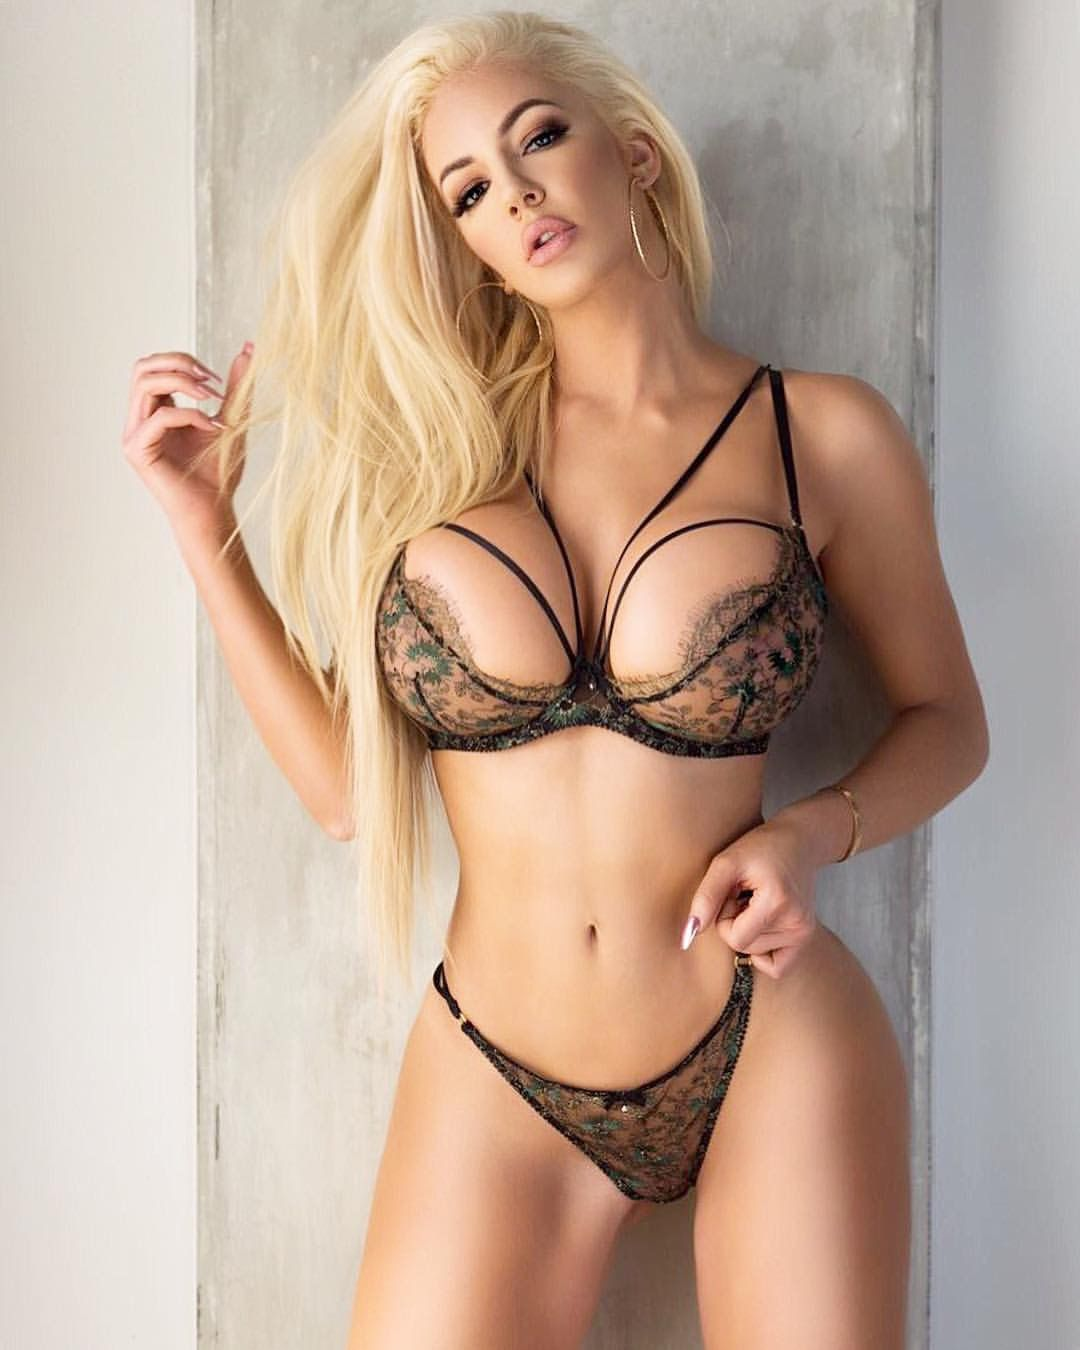 Blonde Boobs And Huge Tits Pics